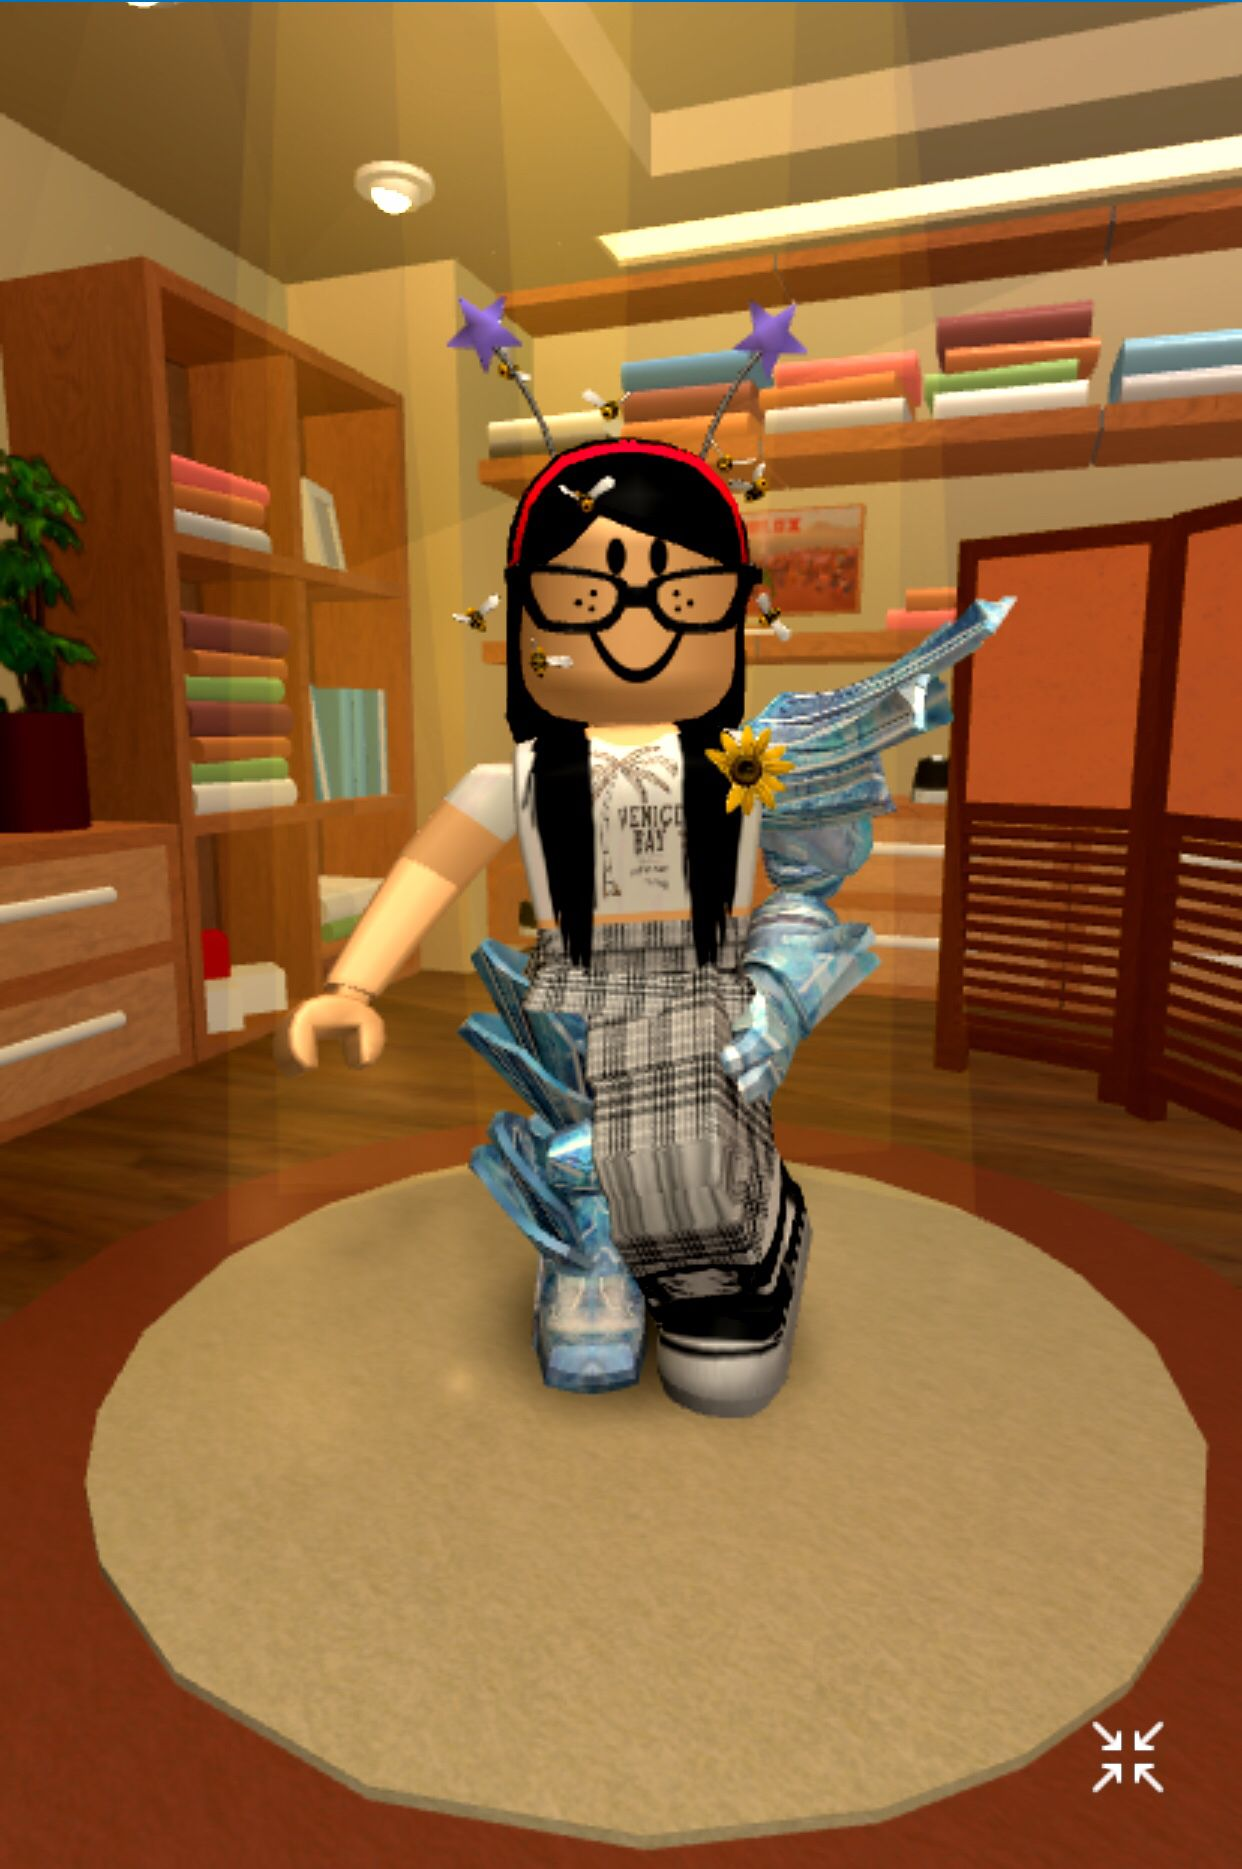 Pin By Ellie Melletino On Life Of Me Roblox Animation Roblox Cute Girl Outfits